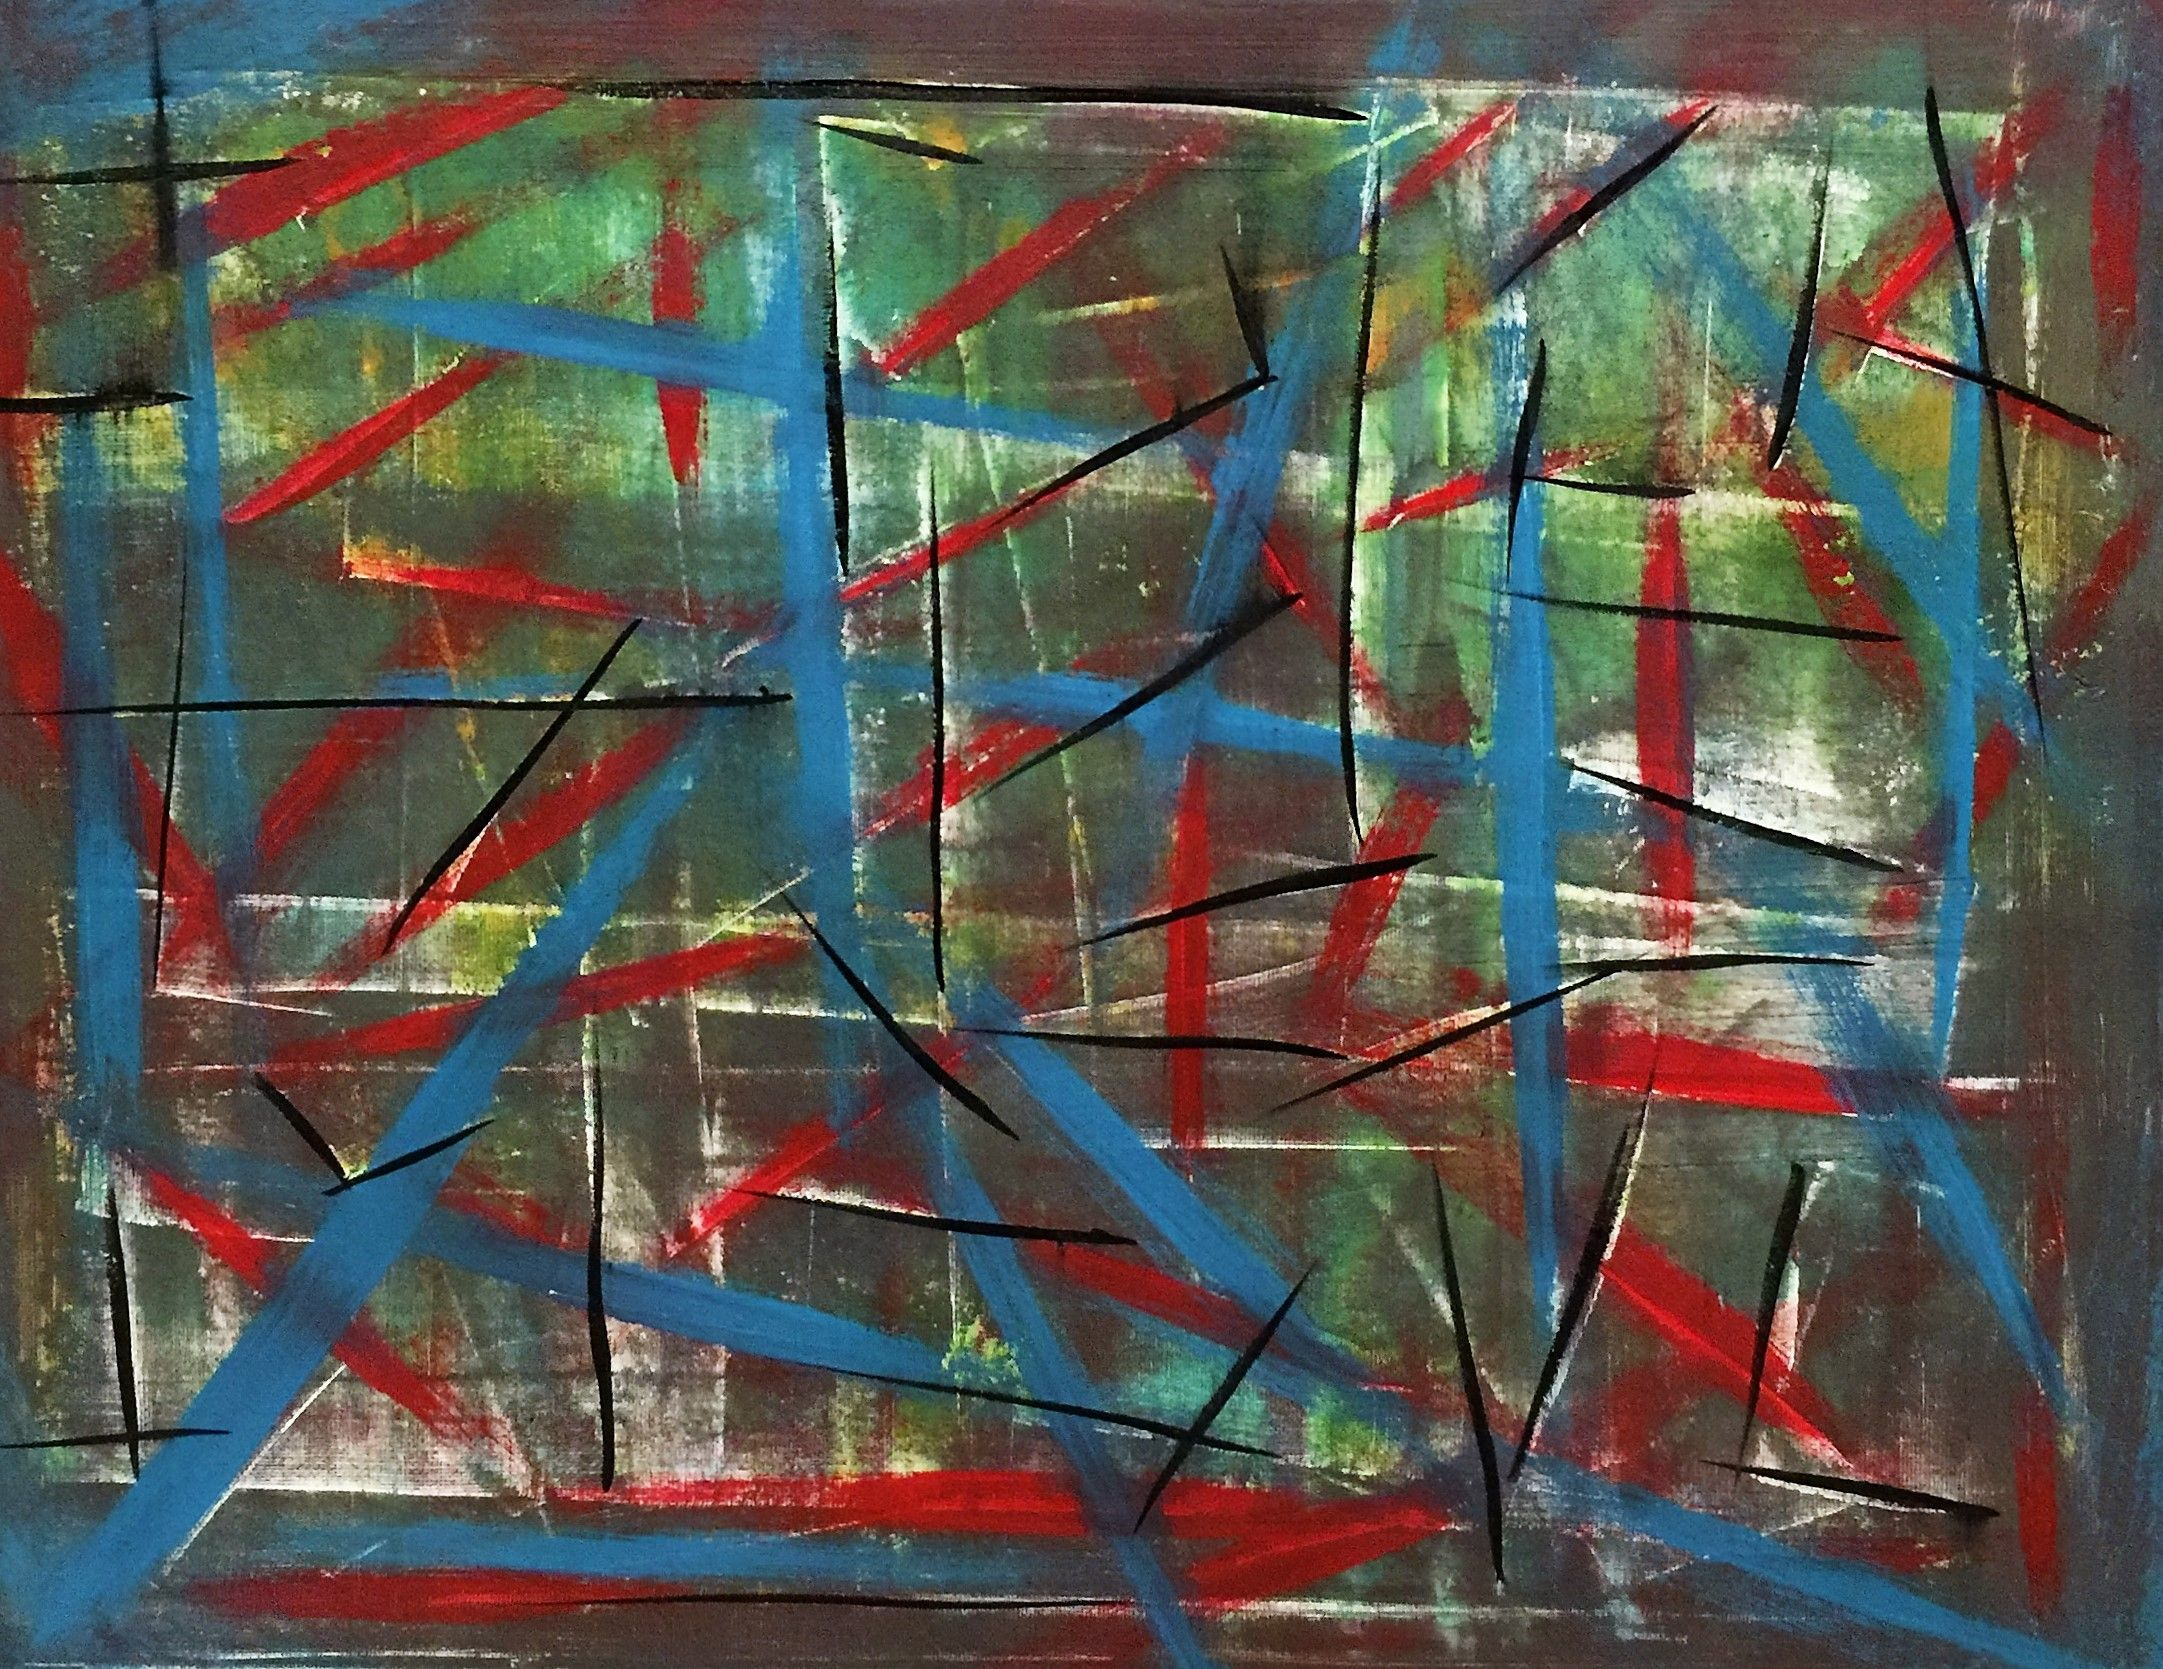 Original Painting By: Jena Medders Material: Stretched Canvas Media: Acrylic The Original Painting is Signed.